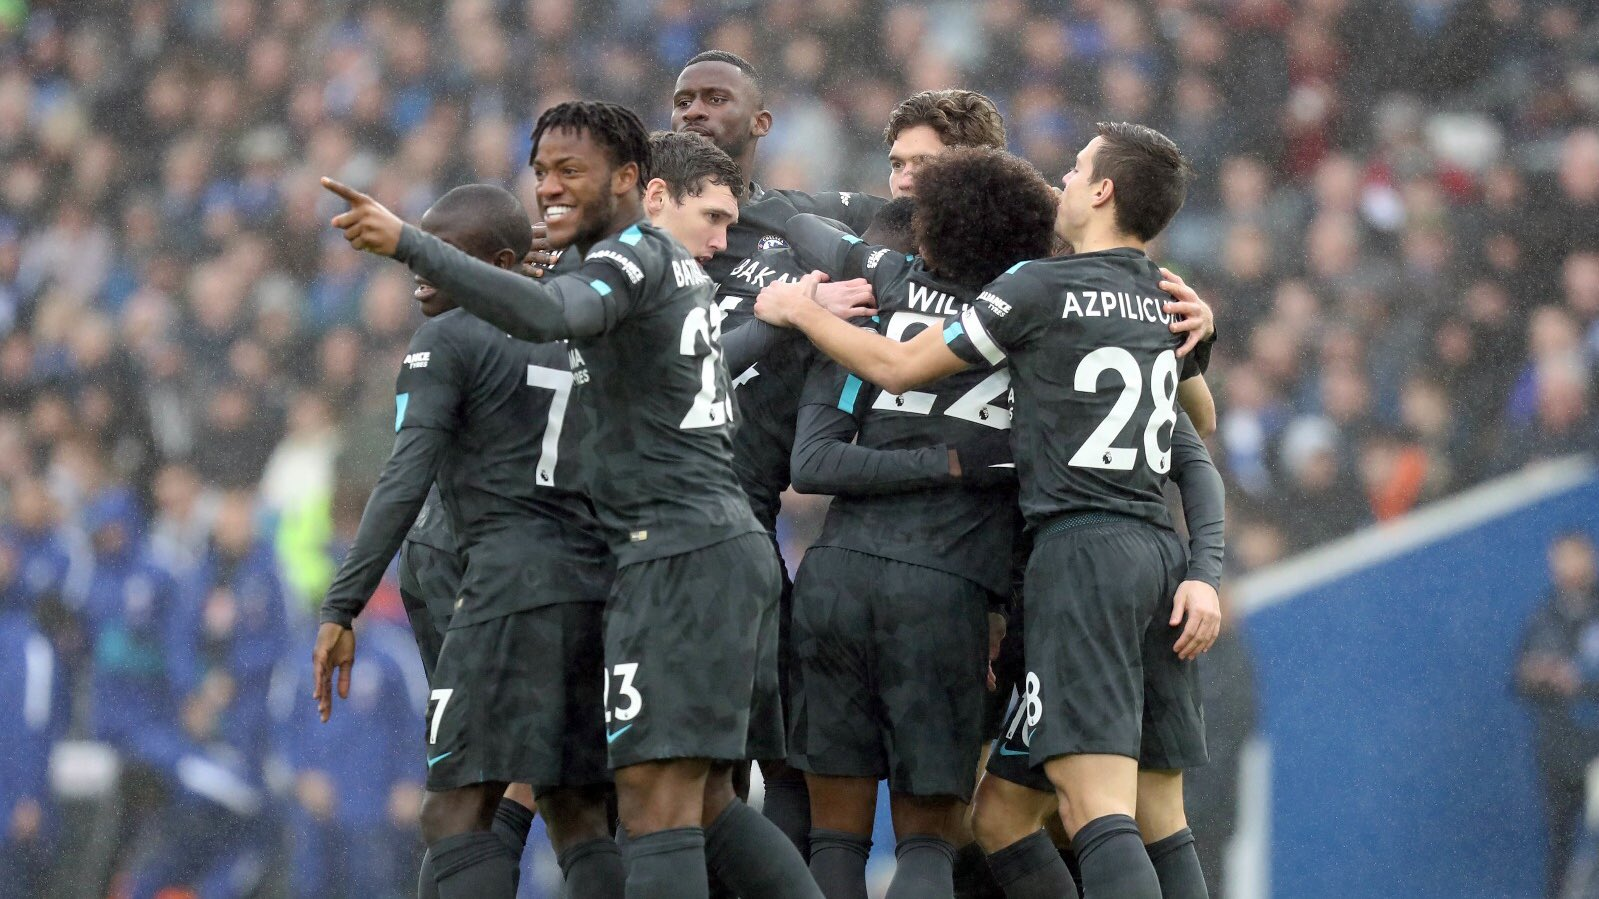 Brighton 0 vs Chelsea 4: Moses Scores and assist  As Chelsea Trounce Brighton